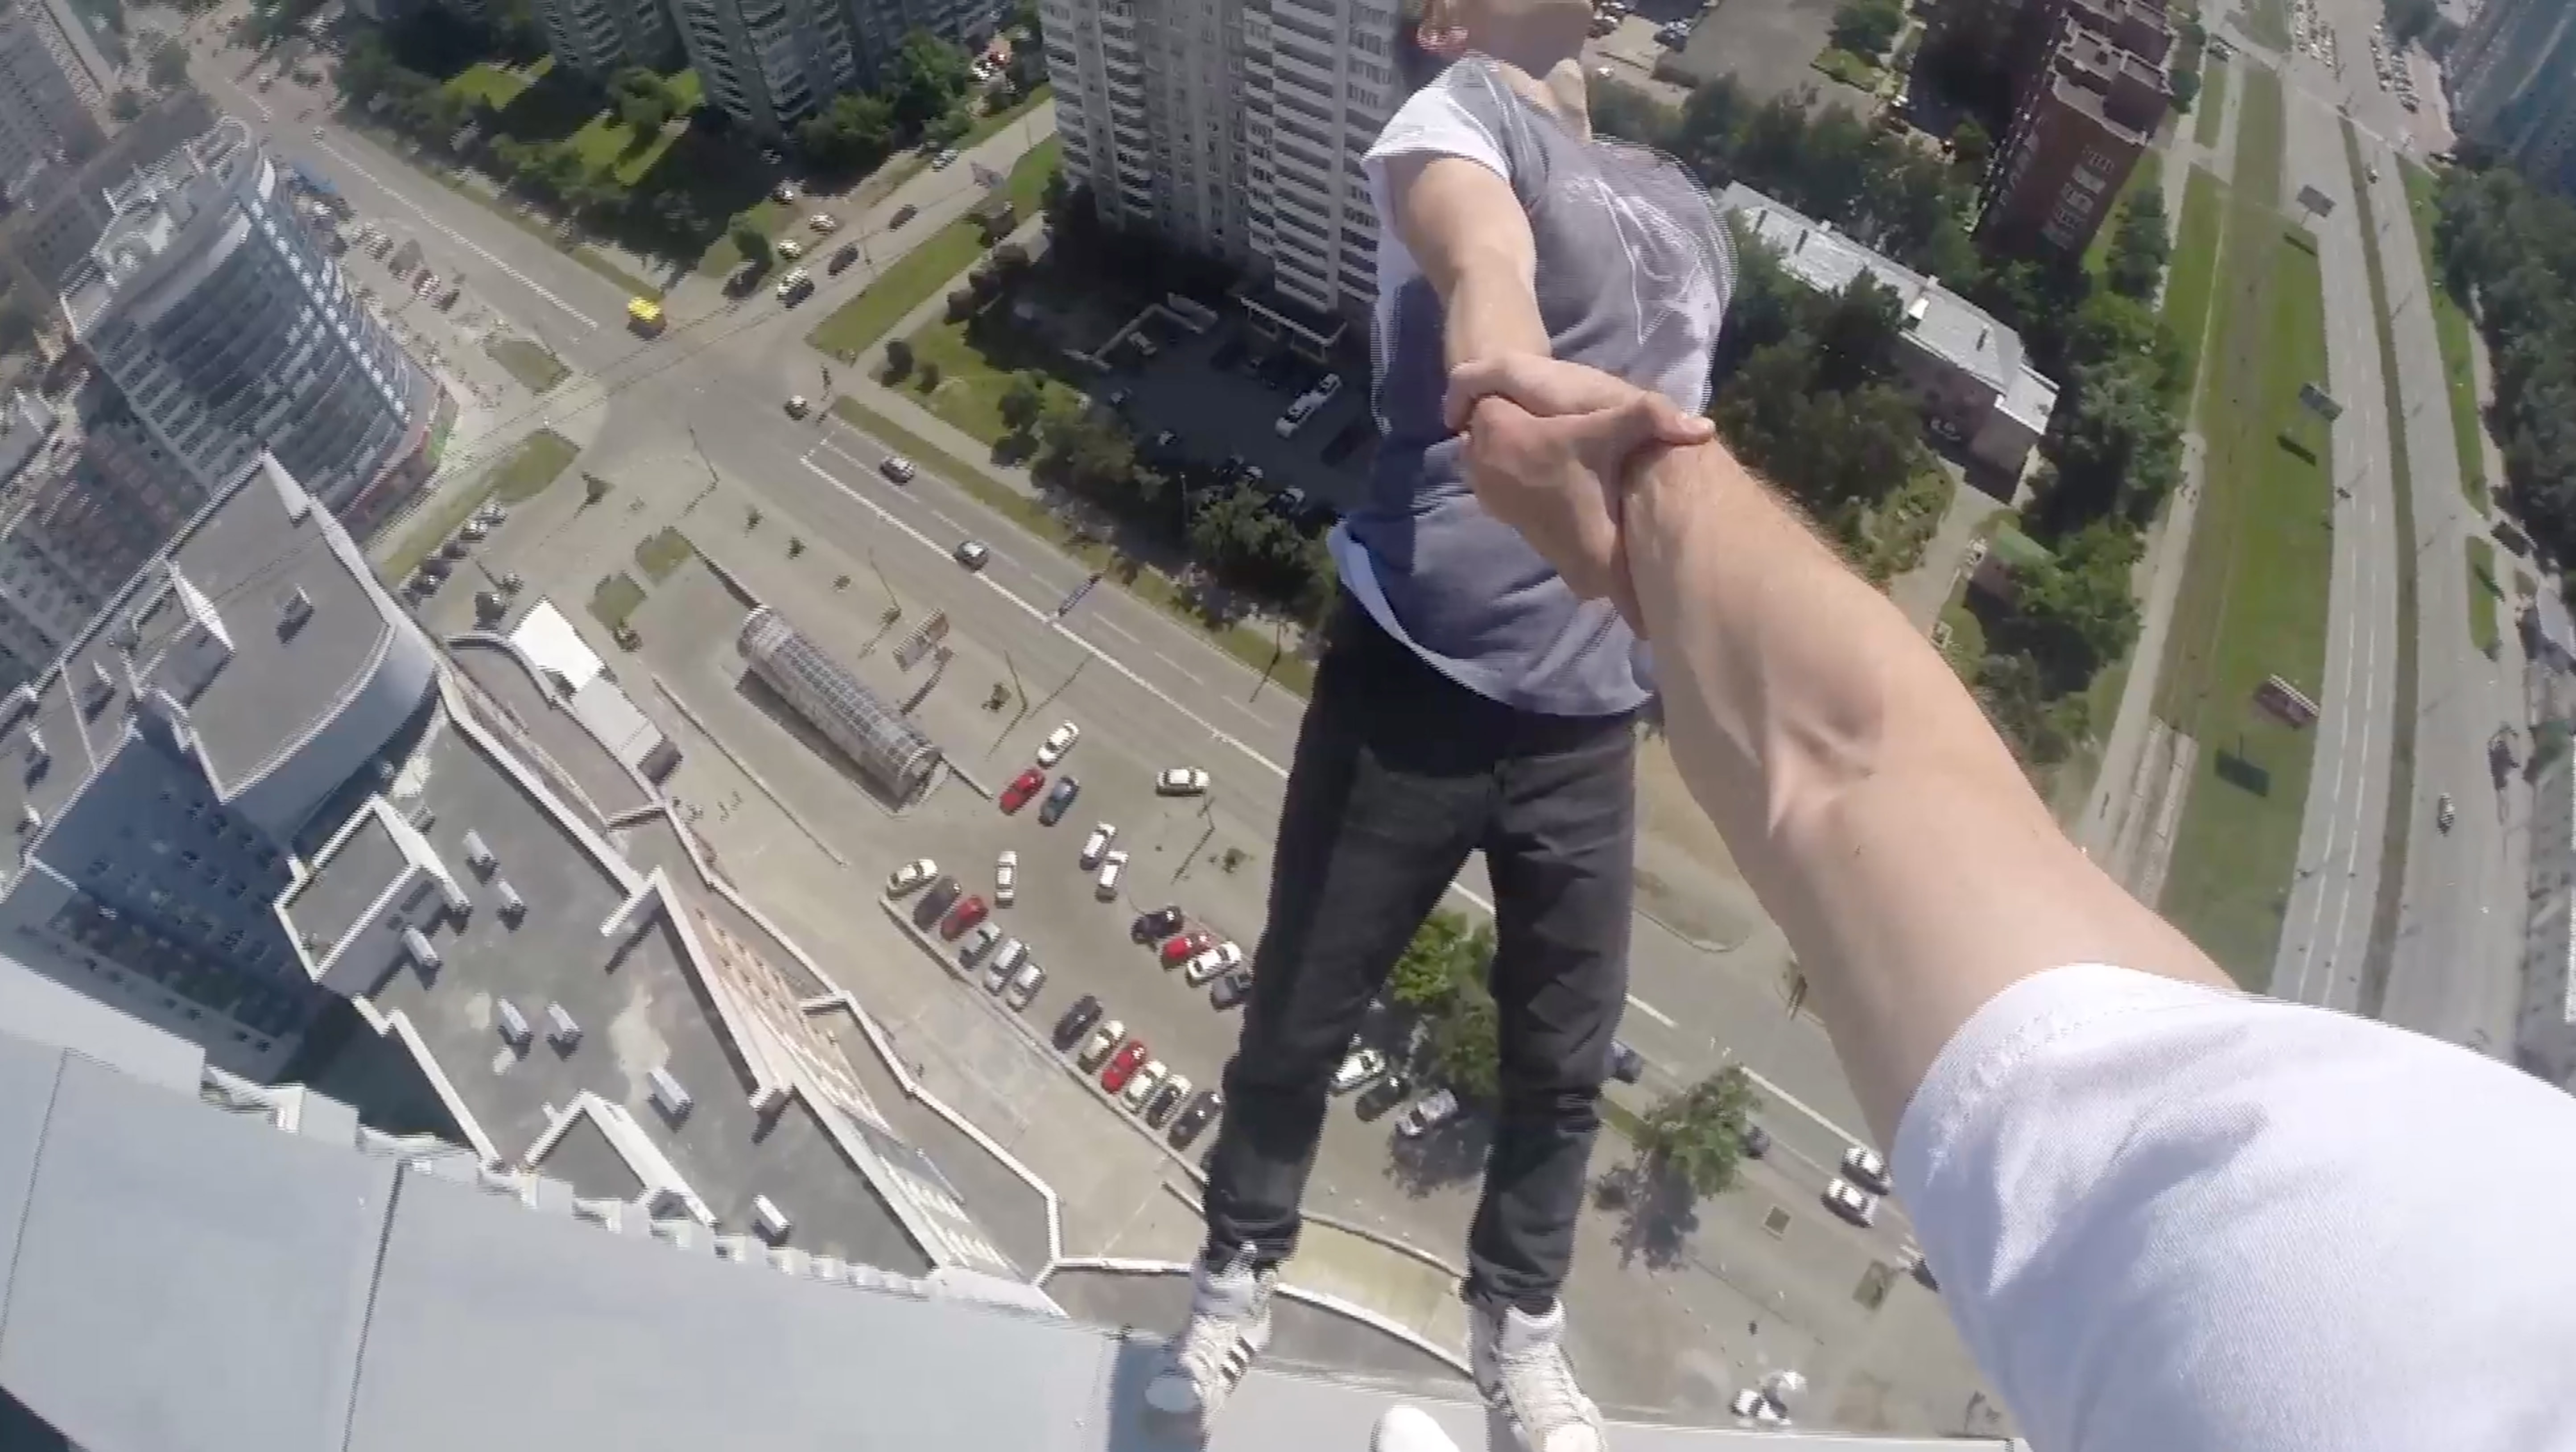 Daredevil Rooftopper Swings By Friends Arm 40 Floors Above